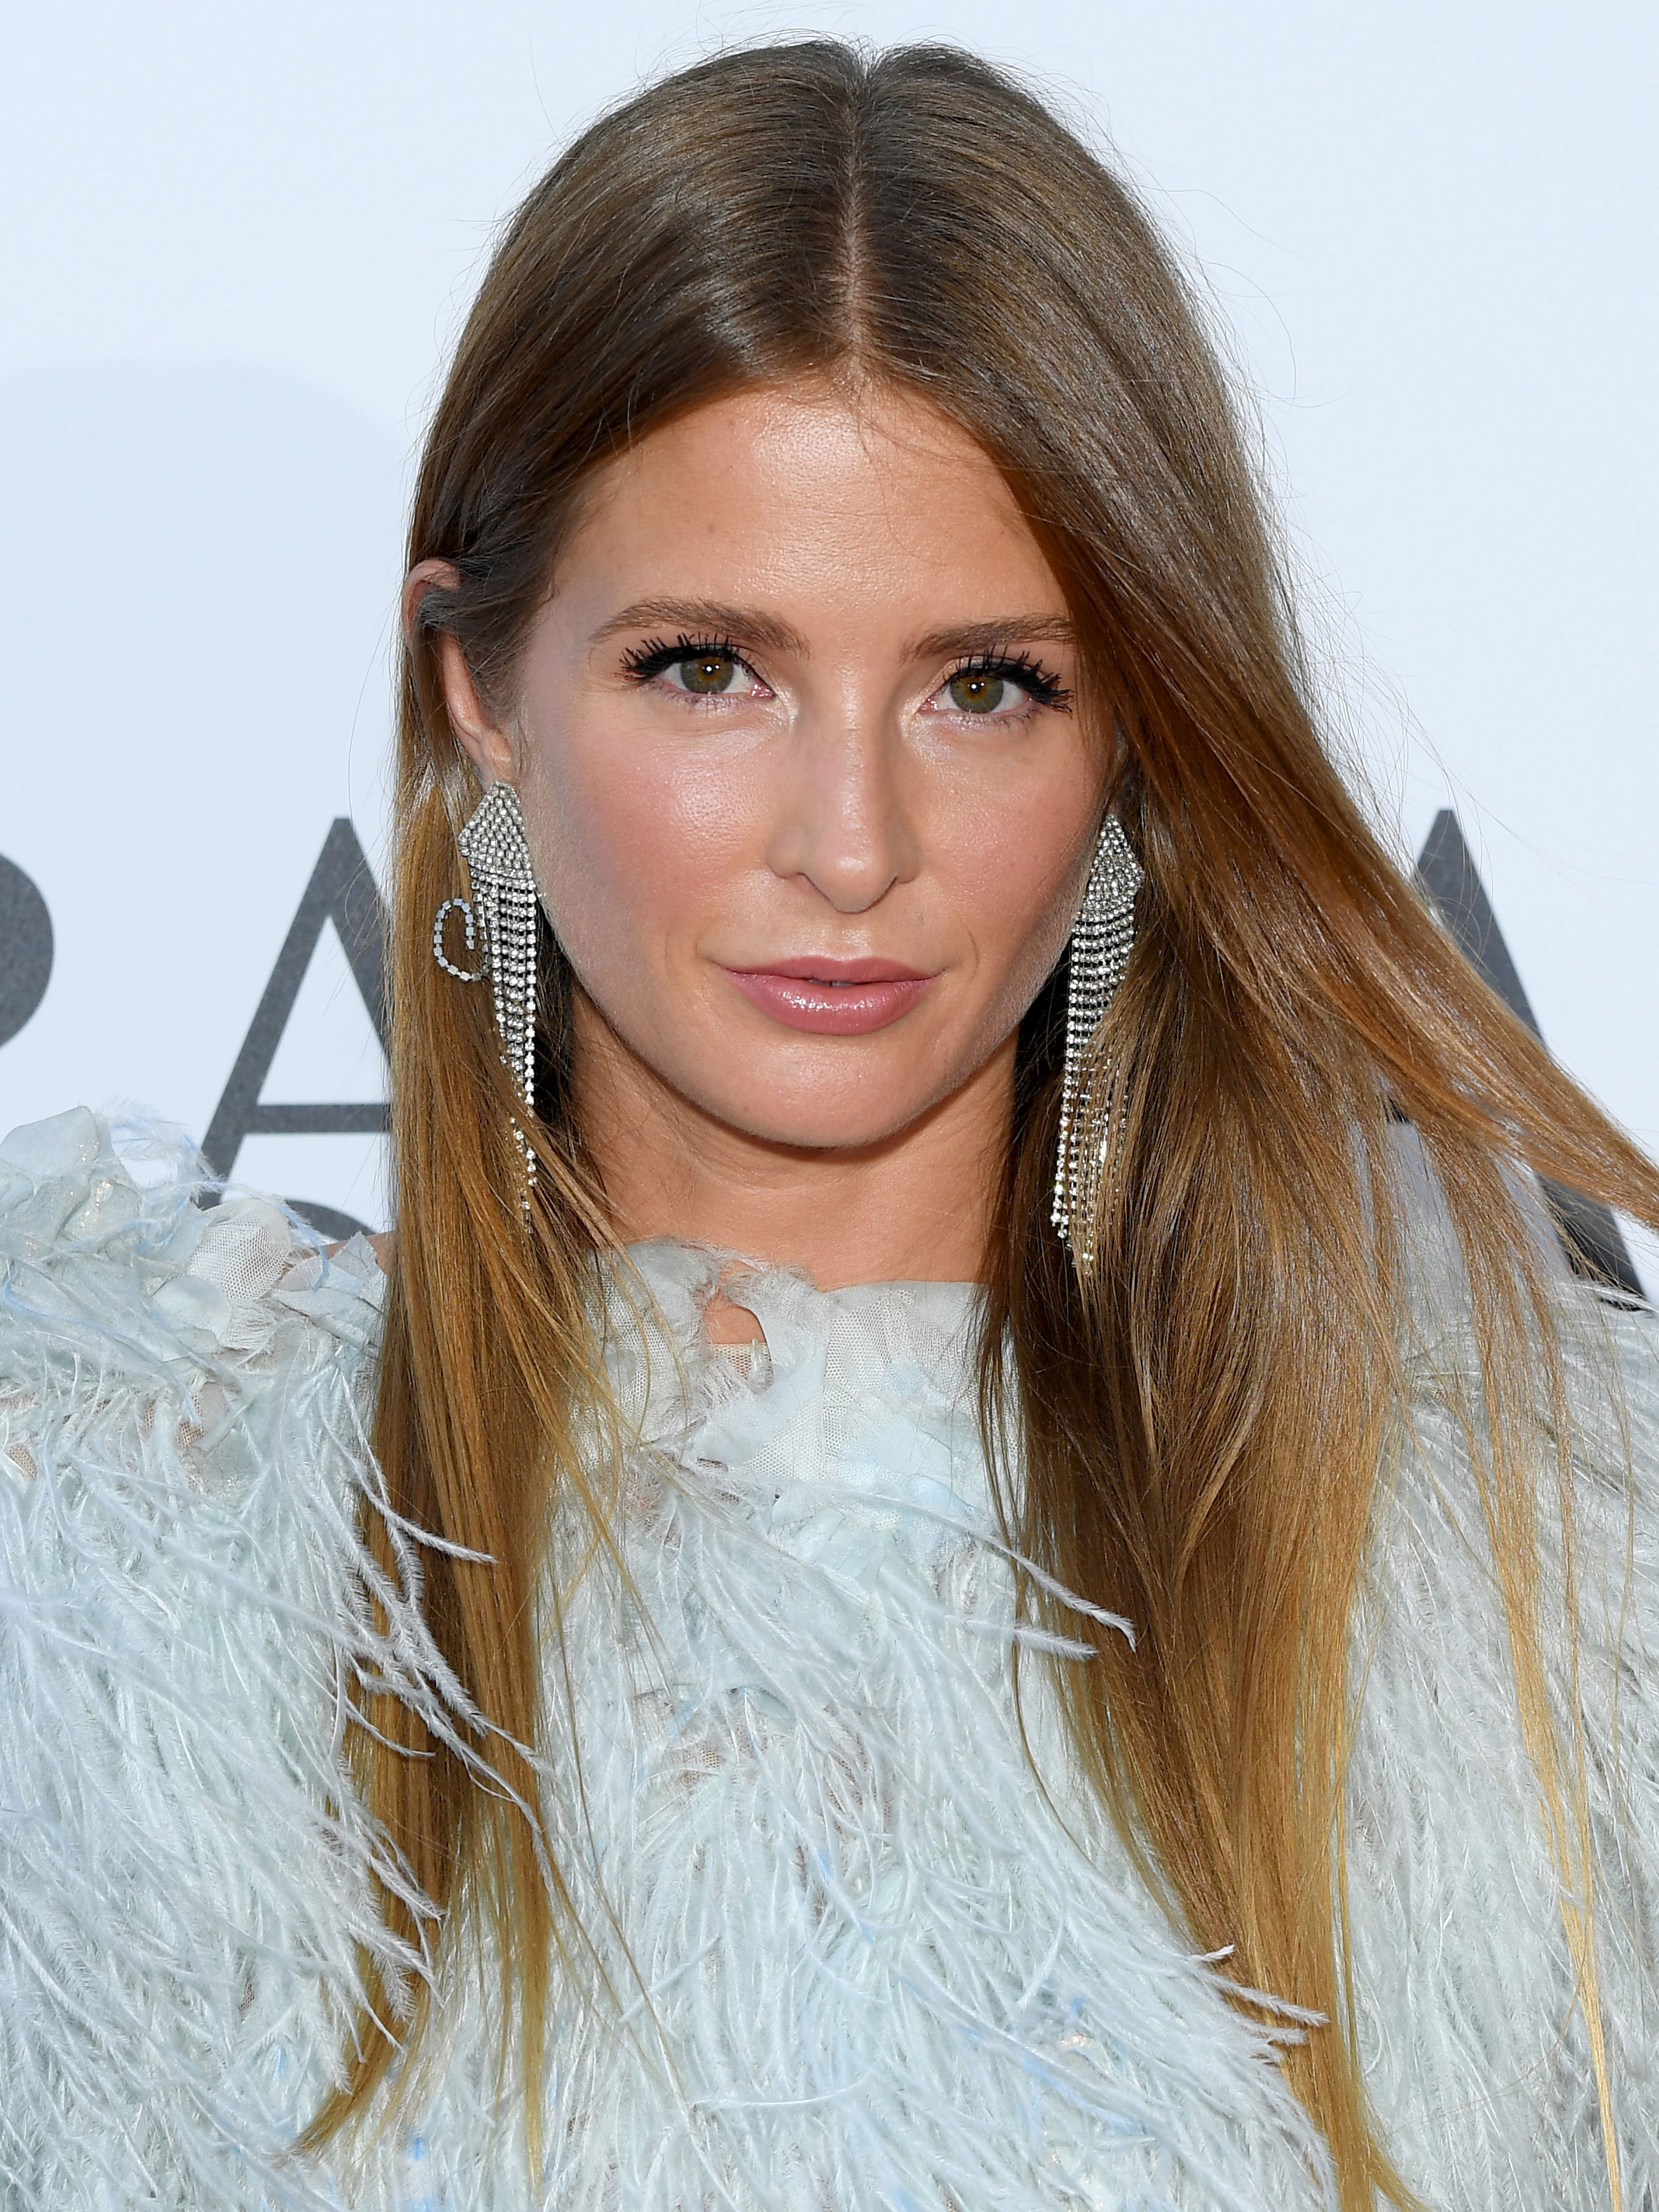 Made In Chelsea's Millie Mackintosh makes surprise return to reality TV